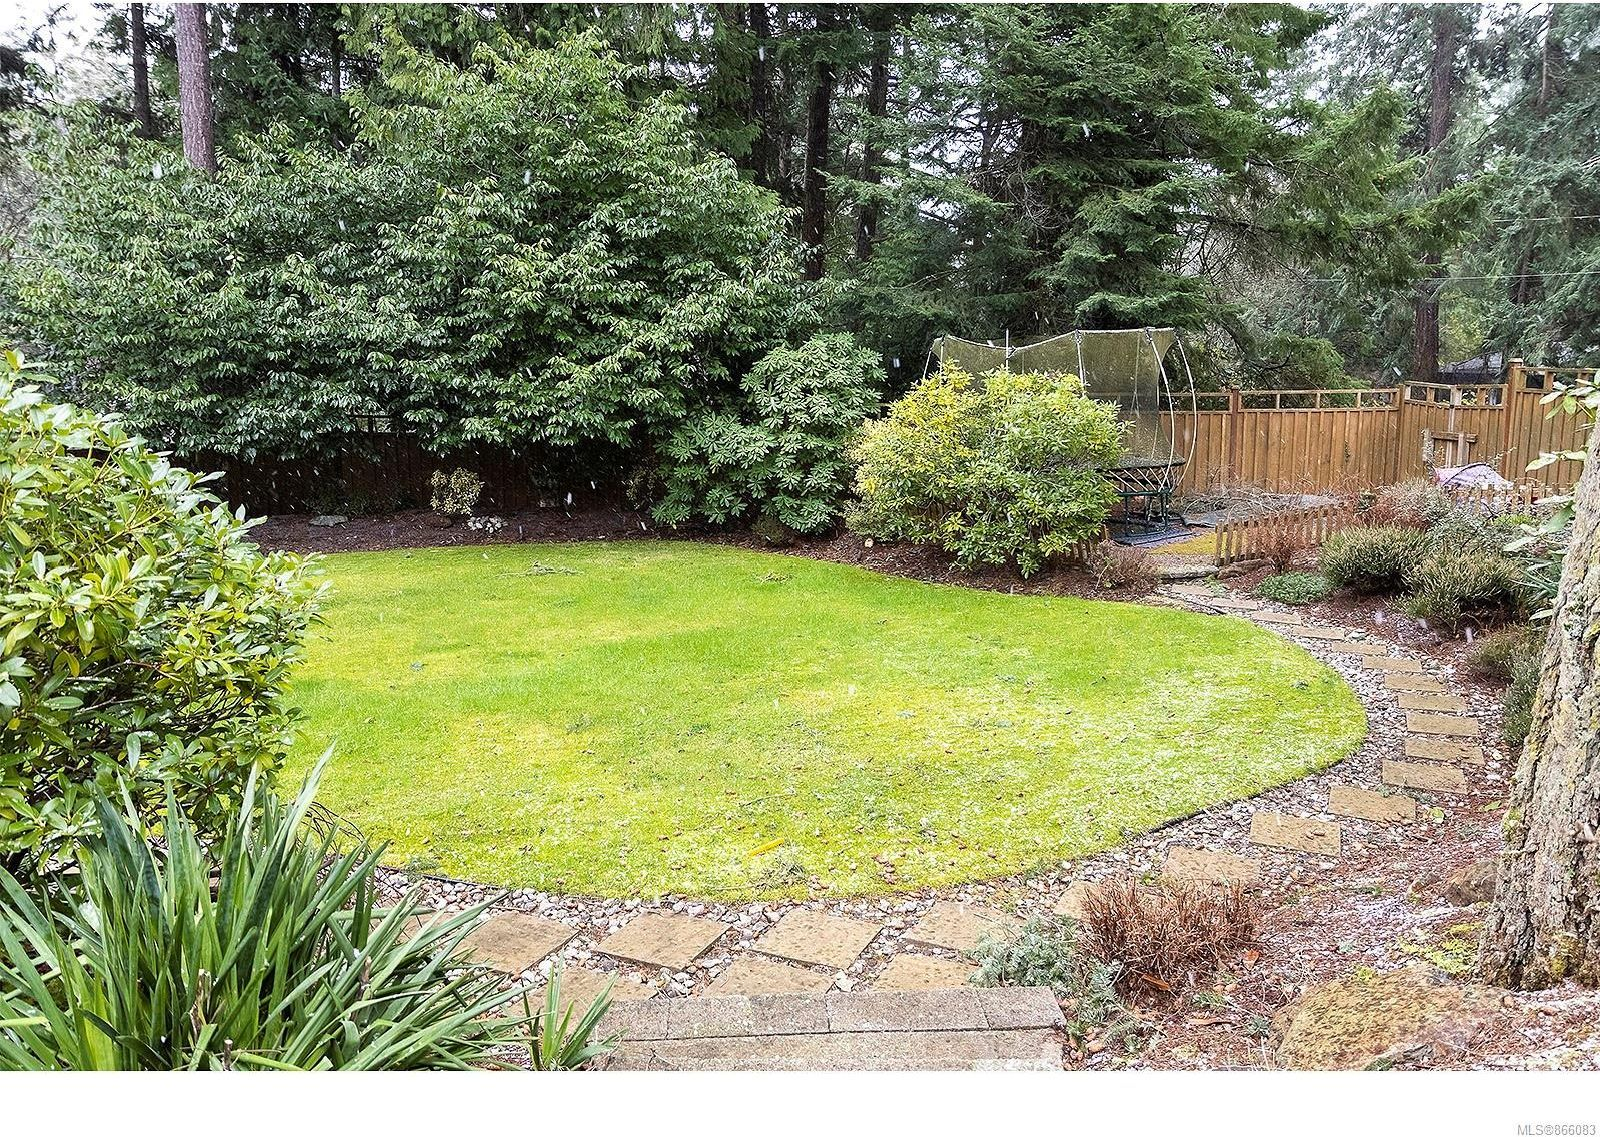 Photo 14: Photos: 5302 Sayward Hill Cres in : SE Cordova Bay House for sale (Saanich East)  : MLS®# 866083